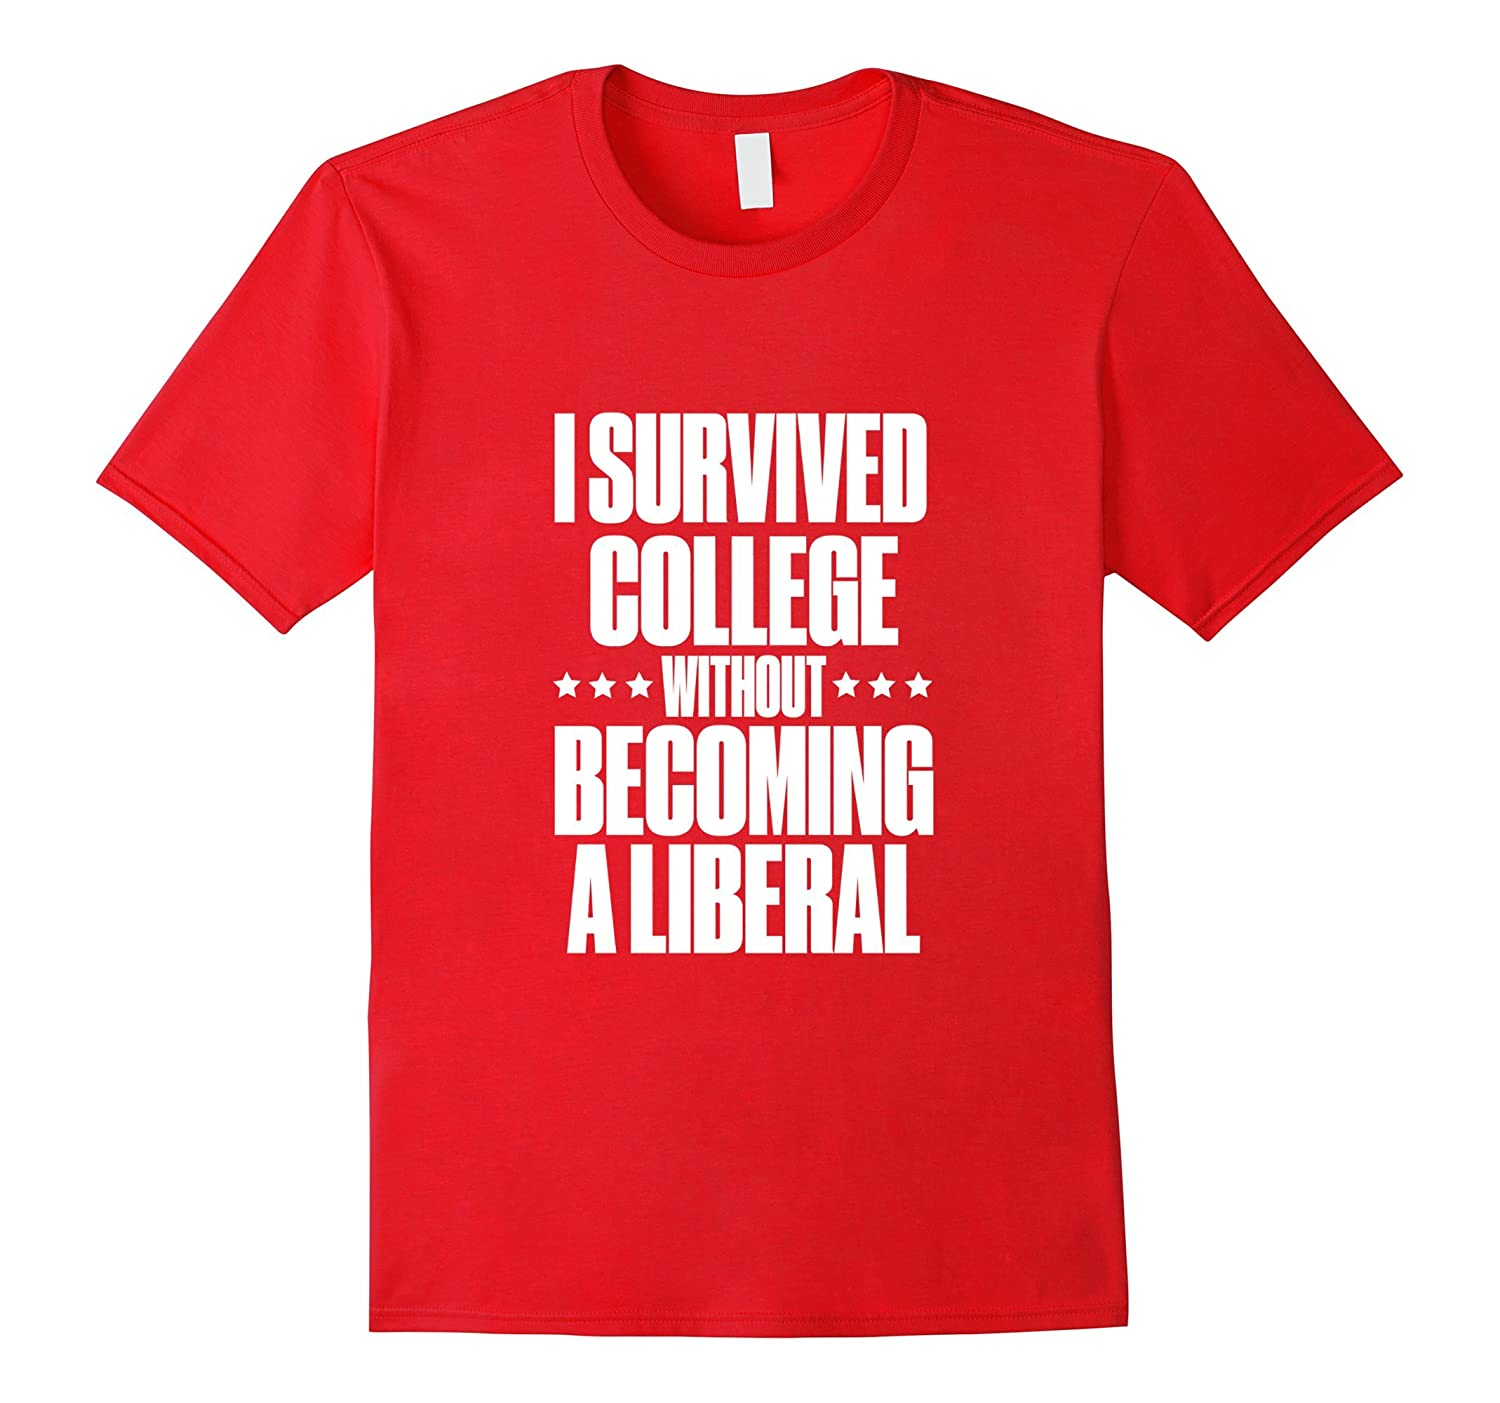 I Survived College without Becoming a Liberal T-Shirt.-BN